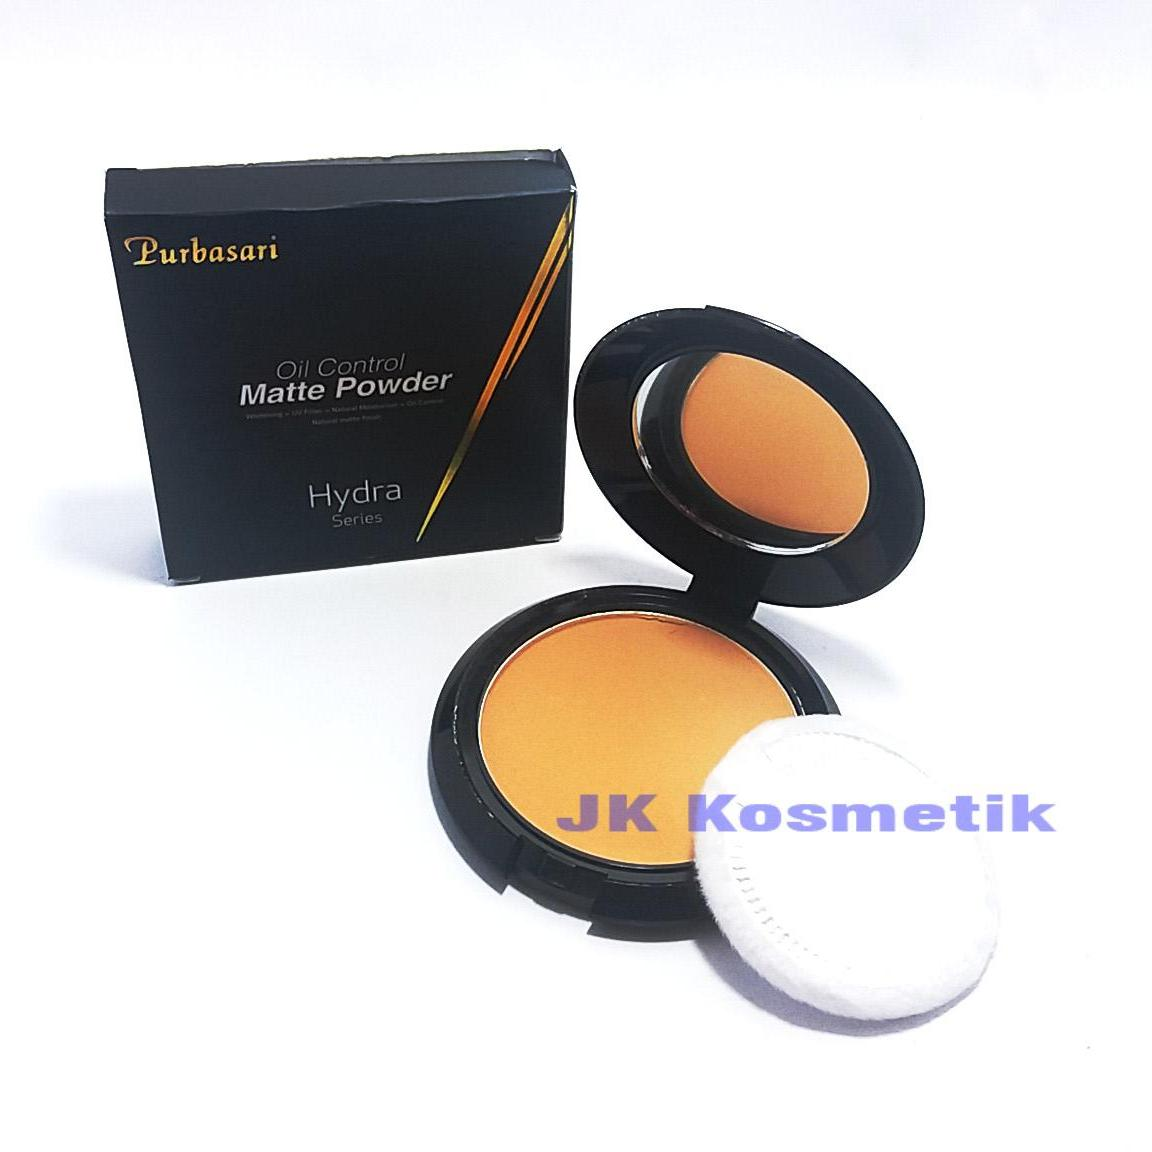 Purbasari Bedak Matte Powder Hydra Series Honey Beige